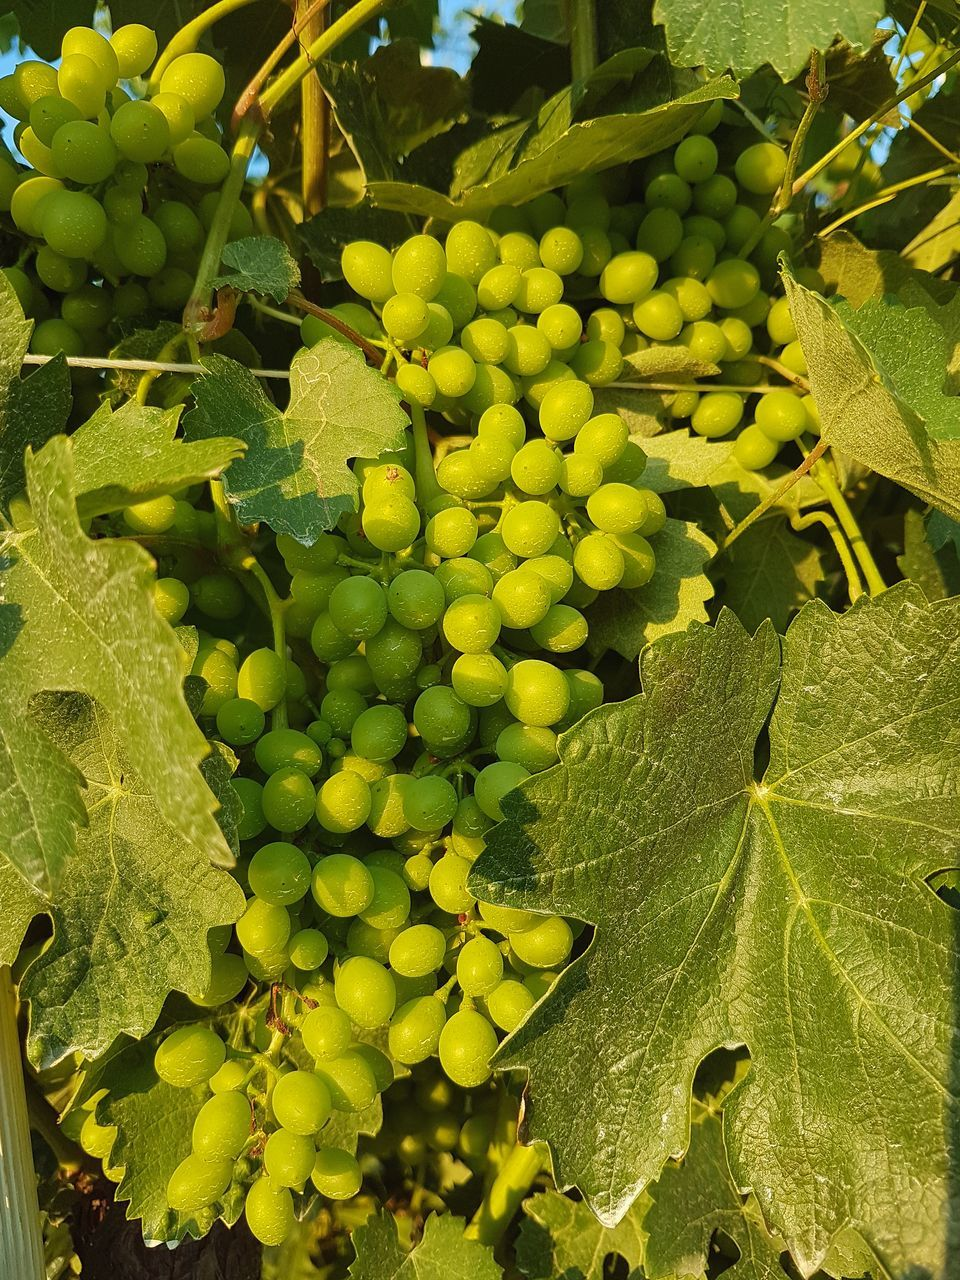 green color, leaf, fruit, growth, food and drink, grape, agriculture, bunch, day, healthy eating, freshness, vineyard, outdoors, abundance, food, no people, nature, close-up, vine - plant